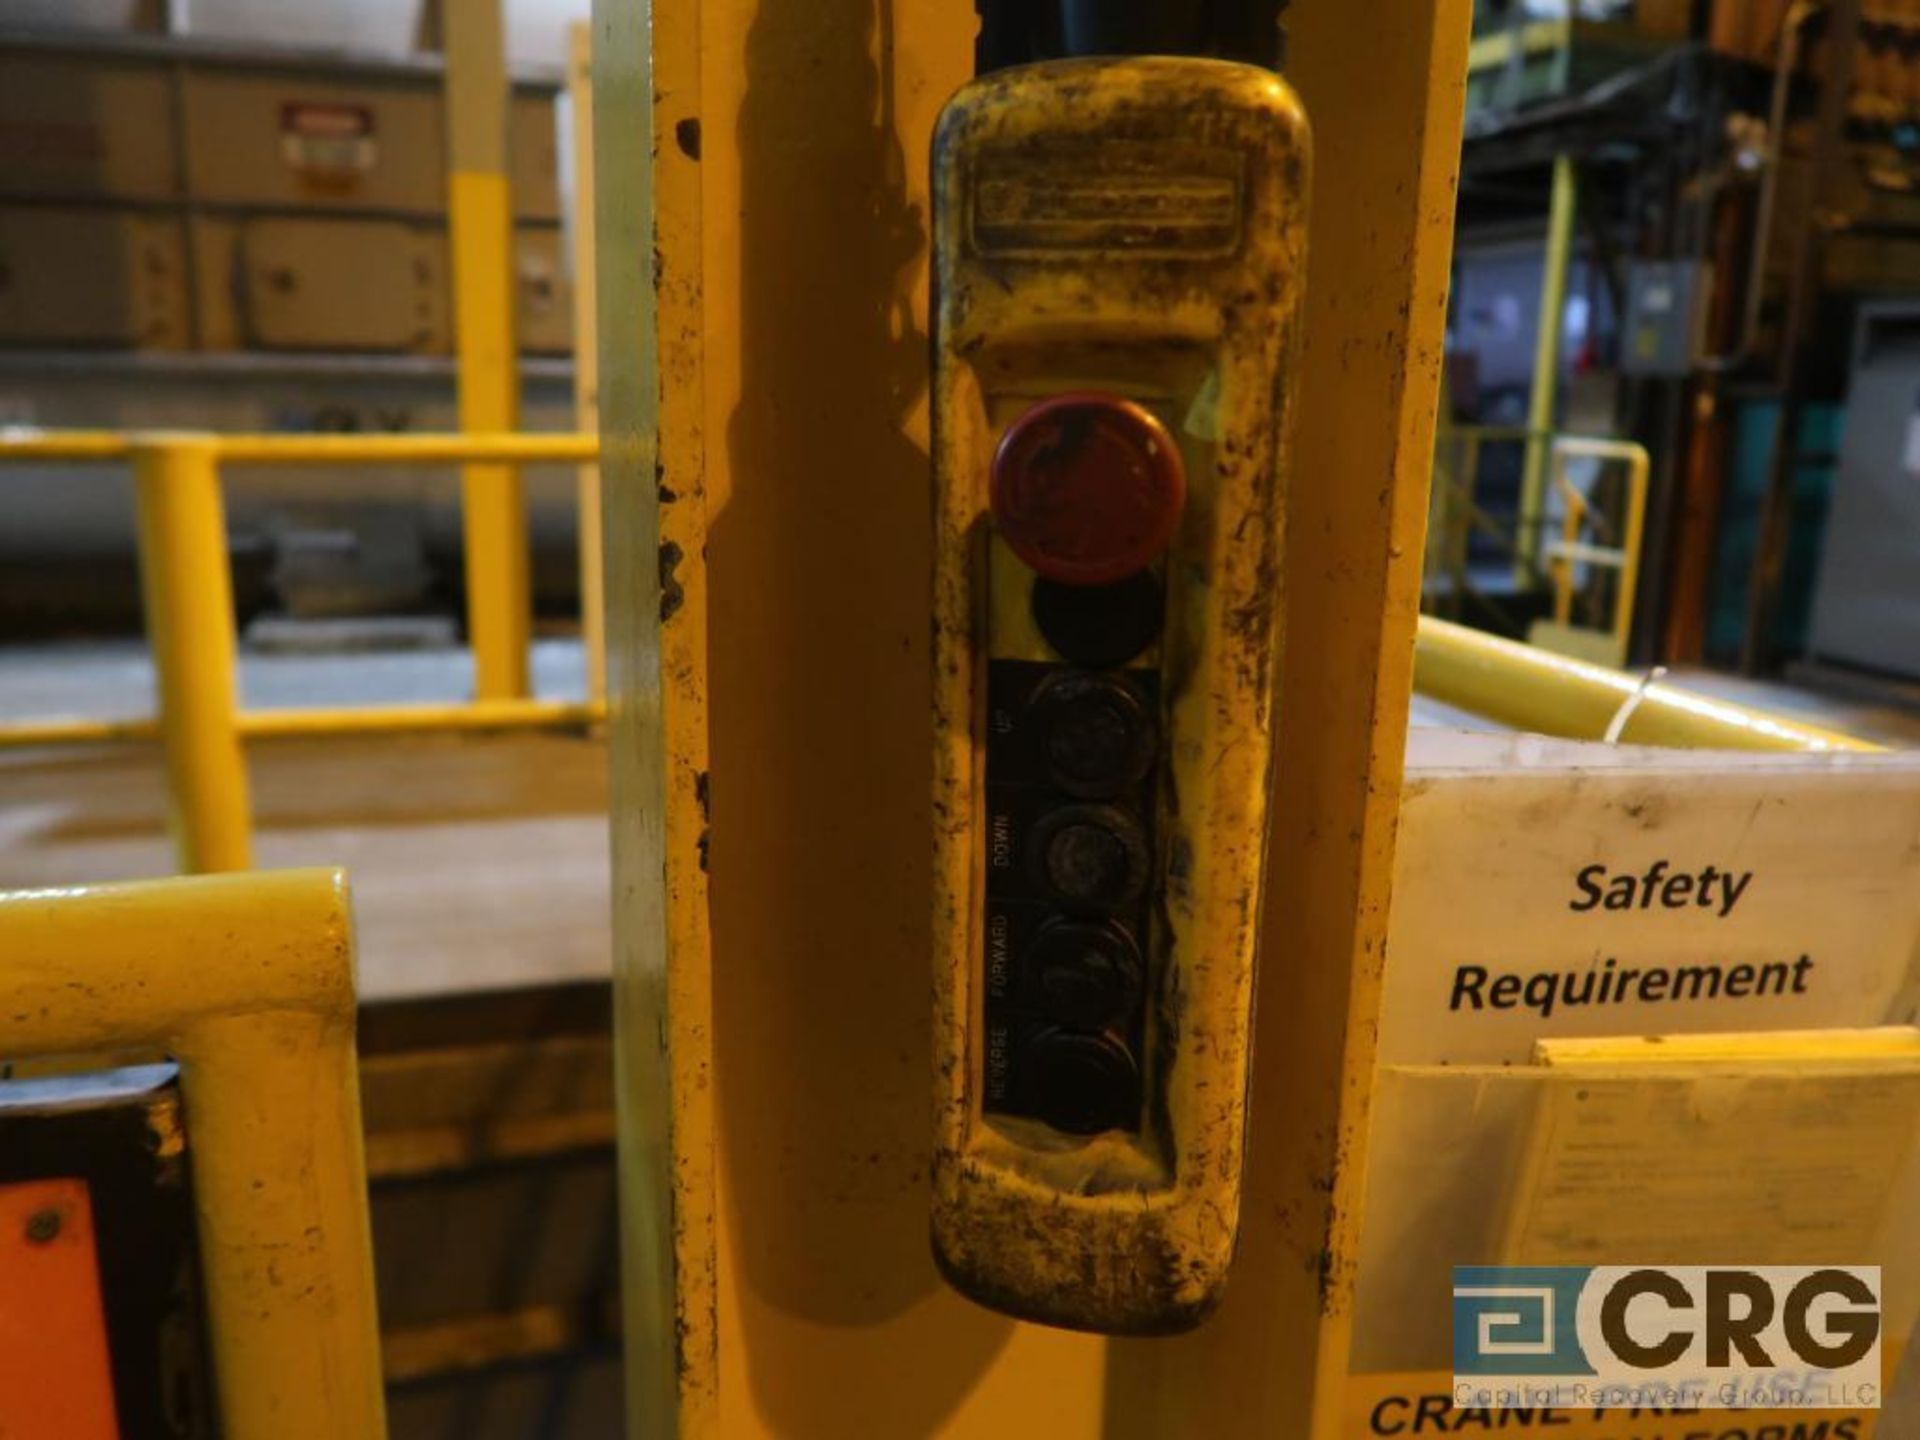 Konecranes XN25 electric hoist, 3 ton cap., hoist only, no beam-LATE DELIVERY (Located on Level - Image 12 of 12